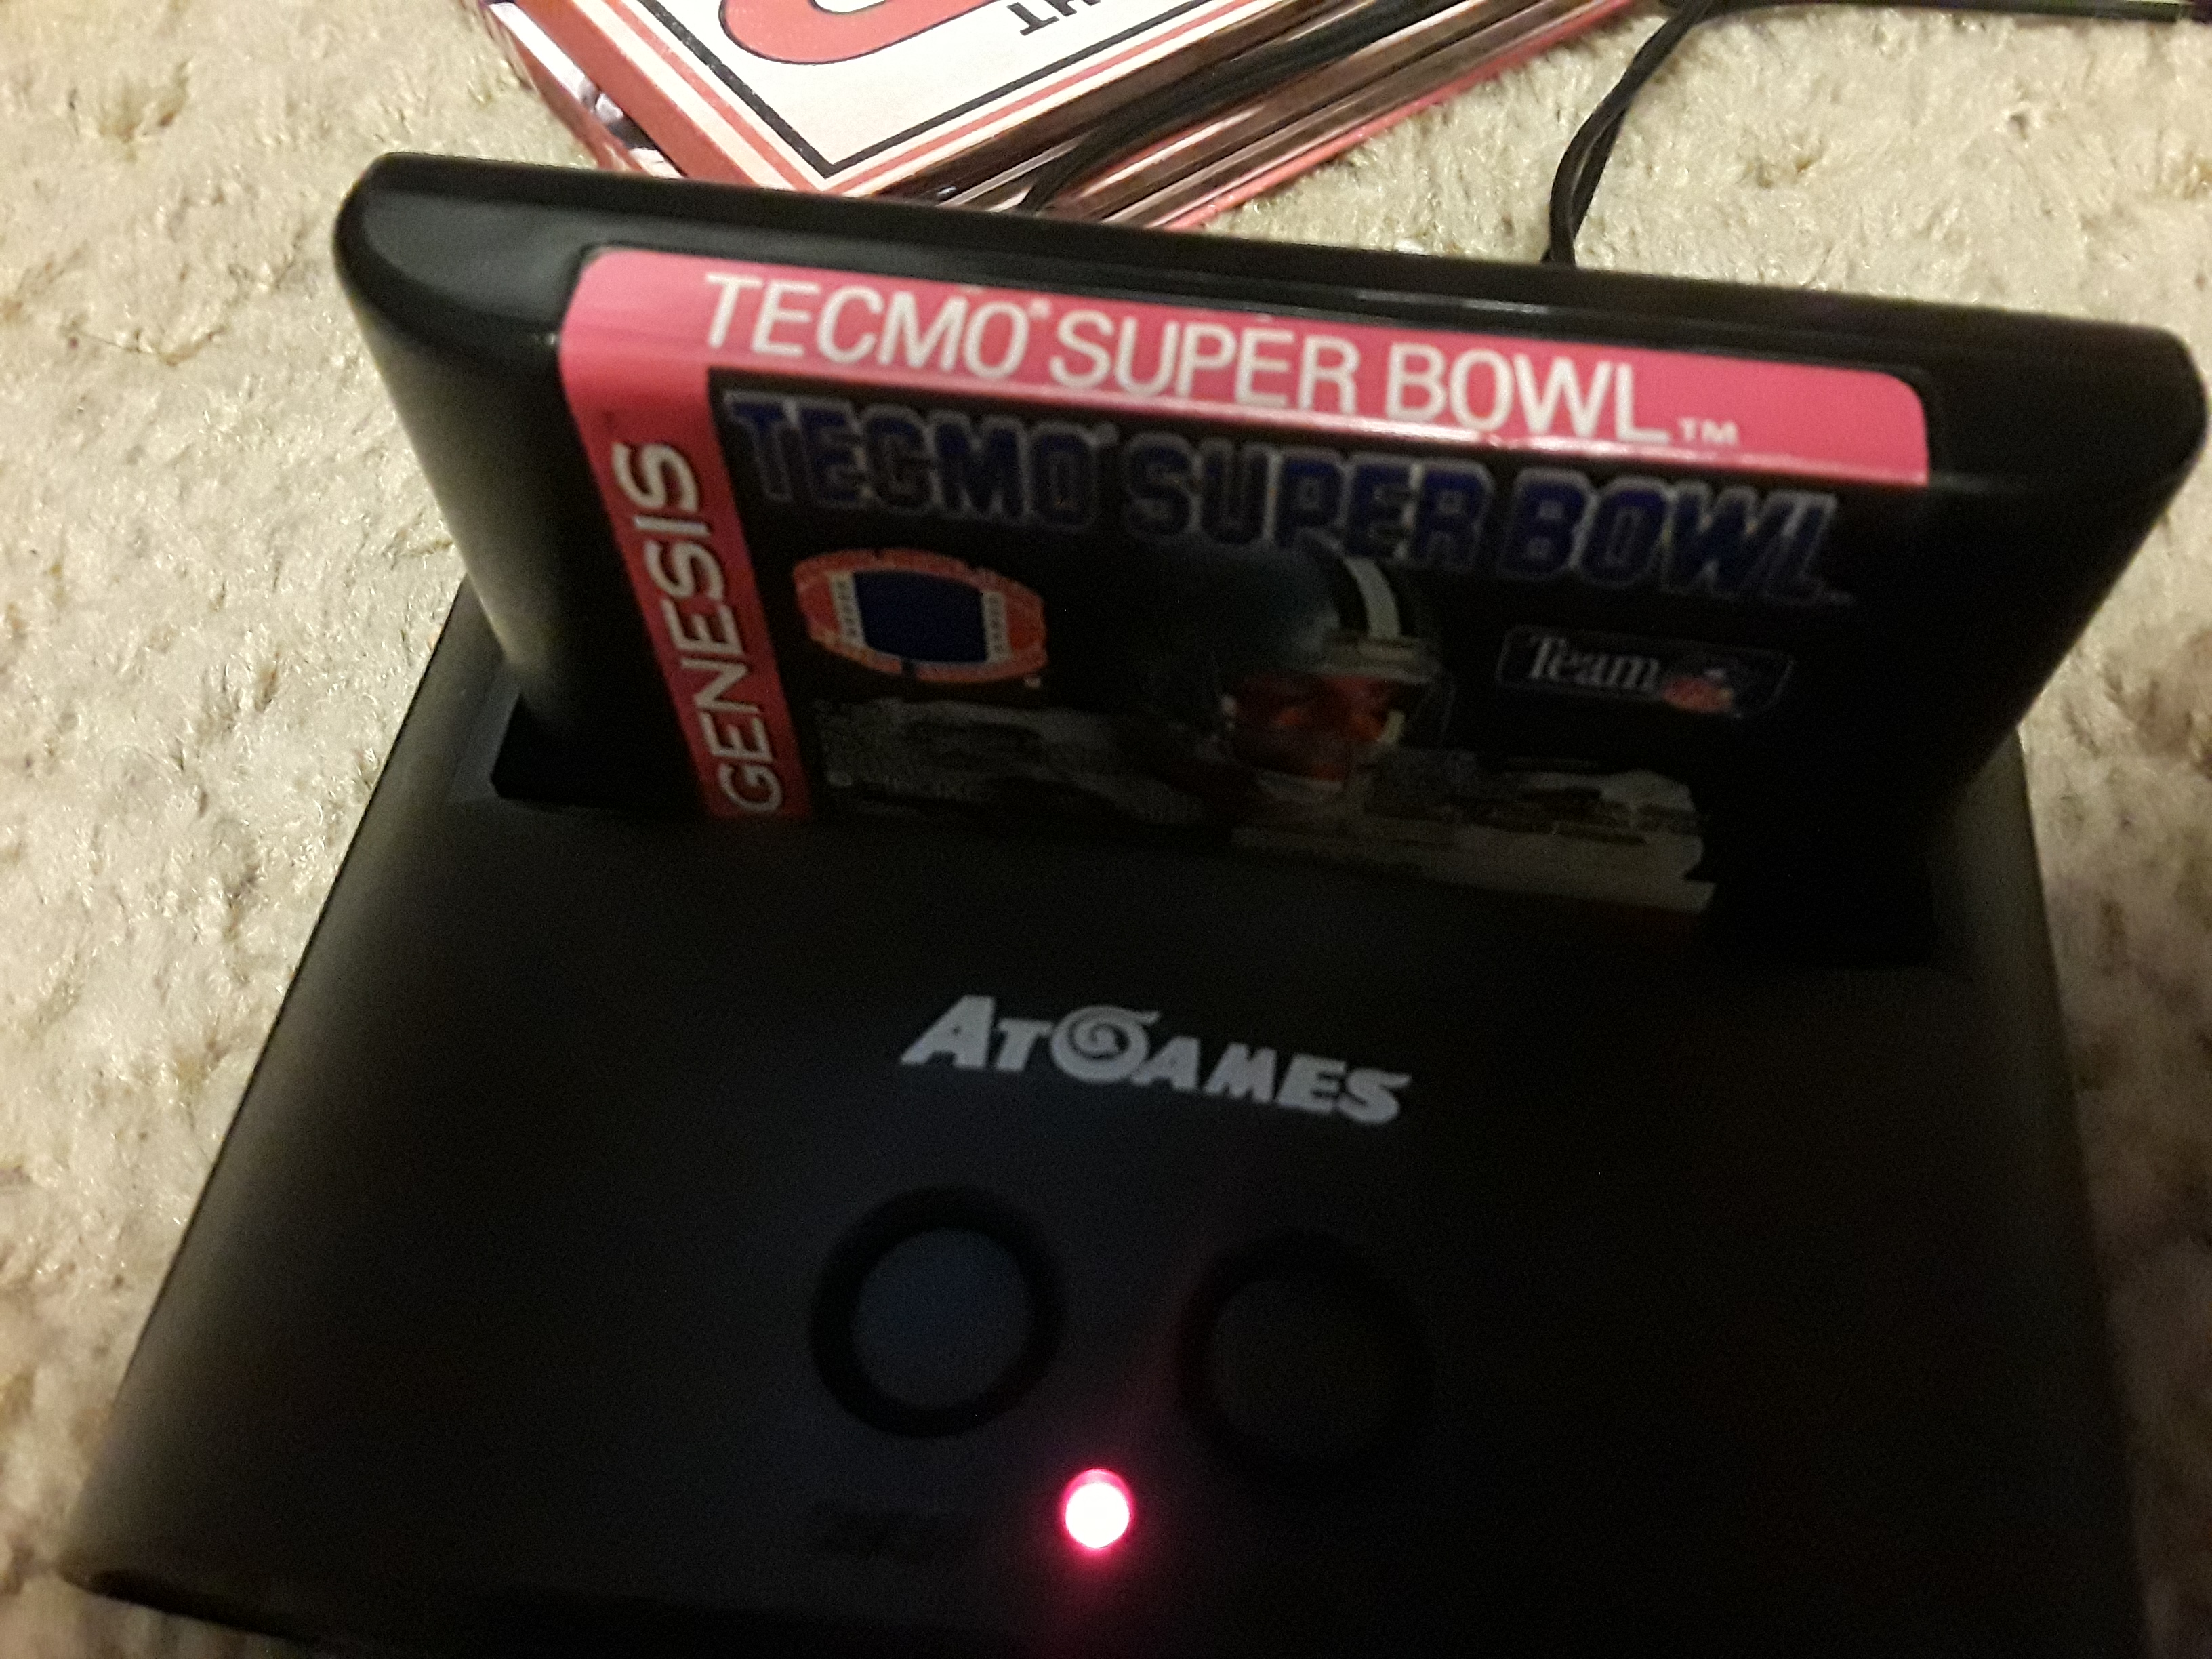 Tecmo Super Bowl [Most Total Yards In A Preseason Game] 419 points